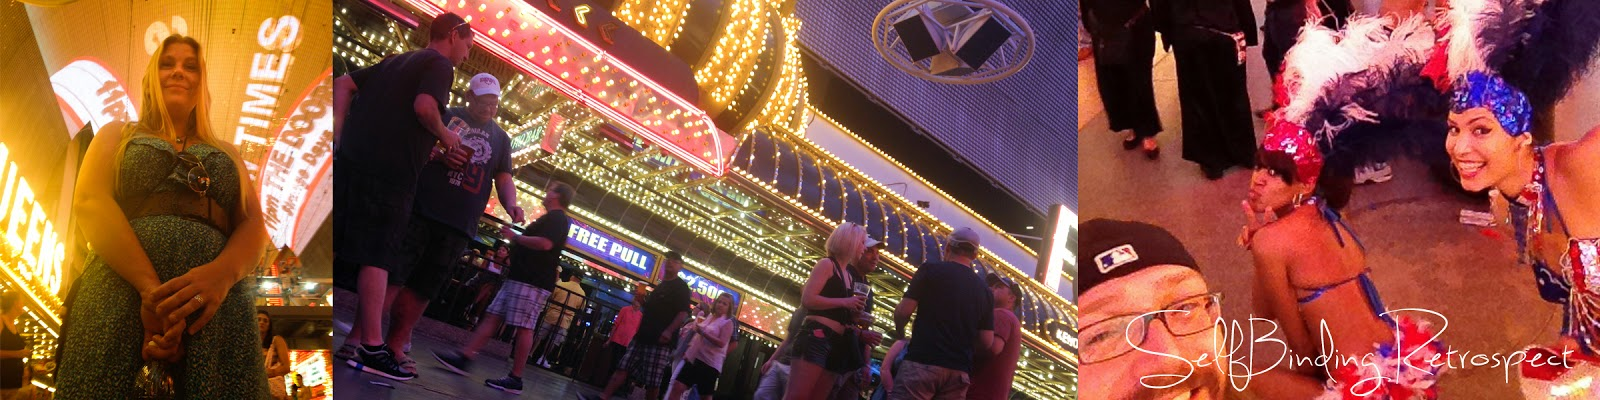 The Sober Girl's Guide To Las Vegas : What To Do In Vegas - SelfBinding Retrospect by Alanna Rusnak